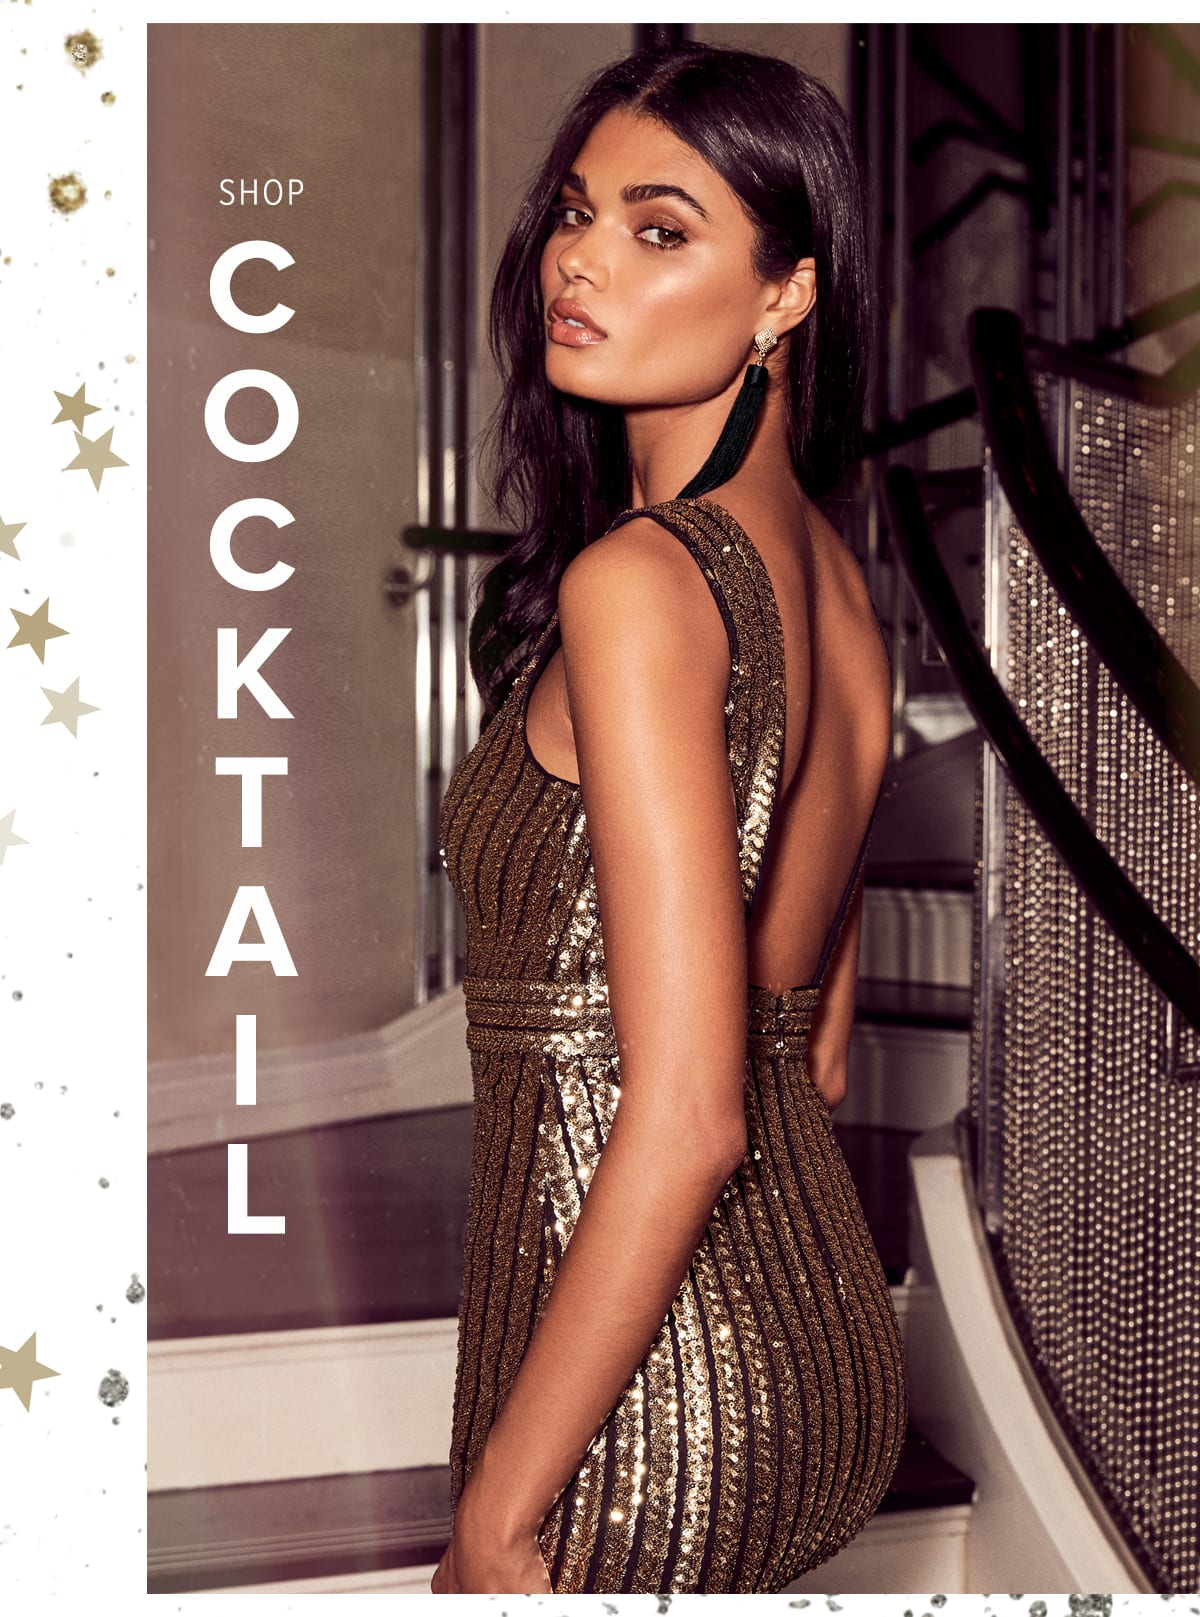 Shop Sexy Cocktail Dresses for Women.